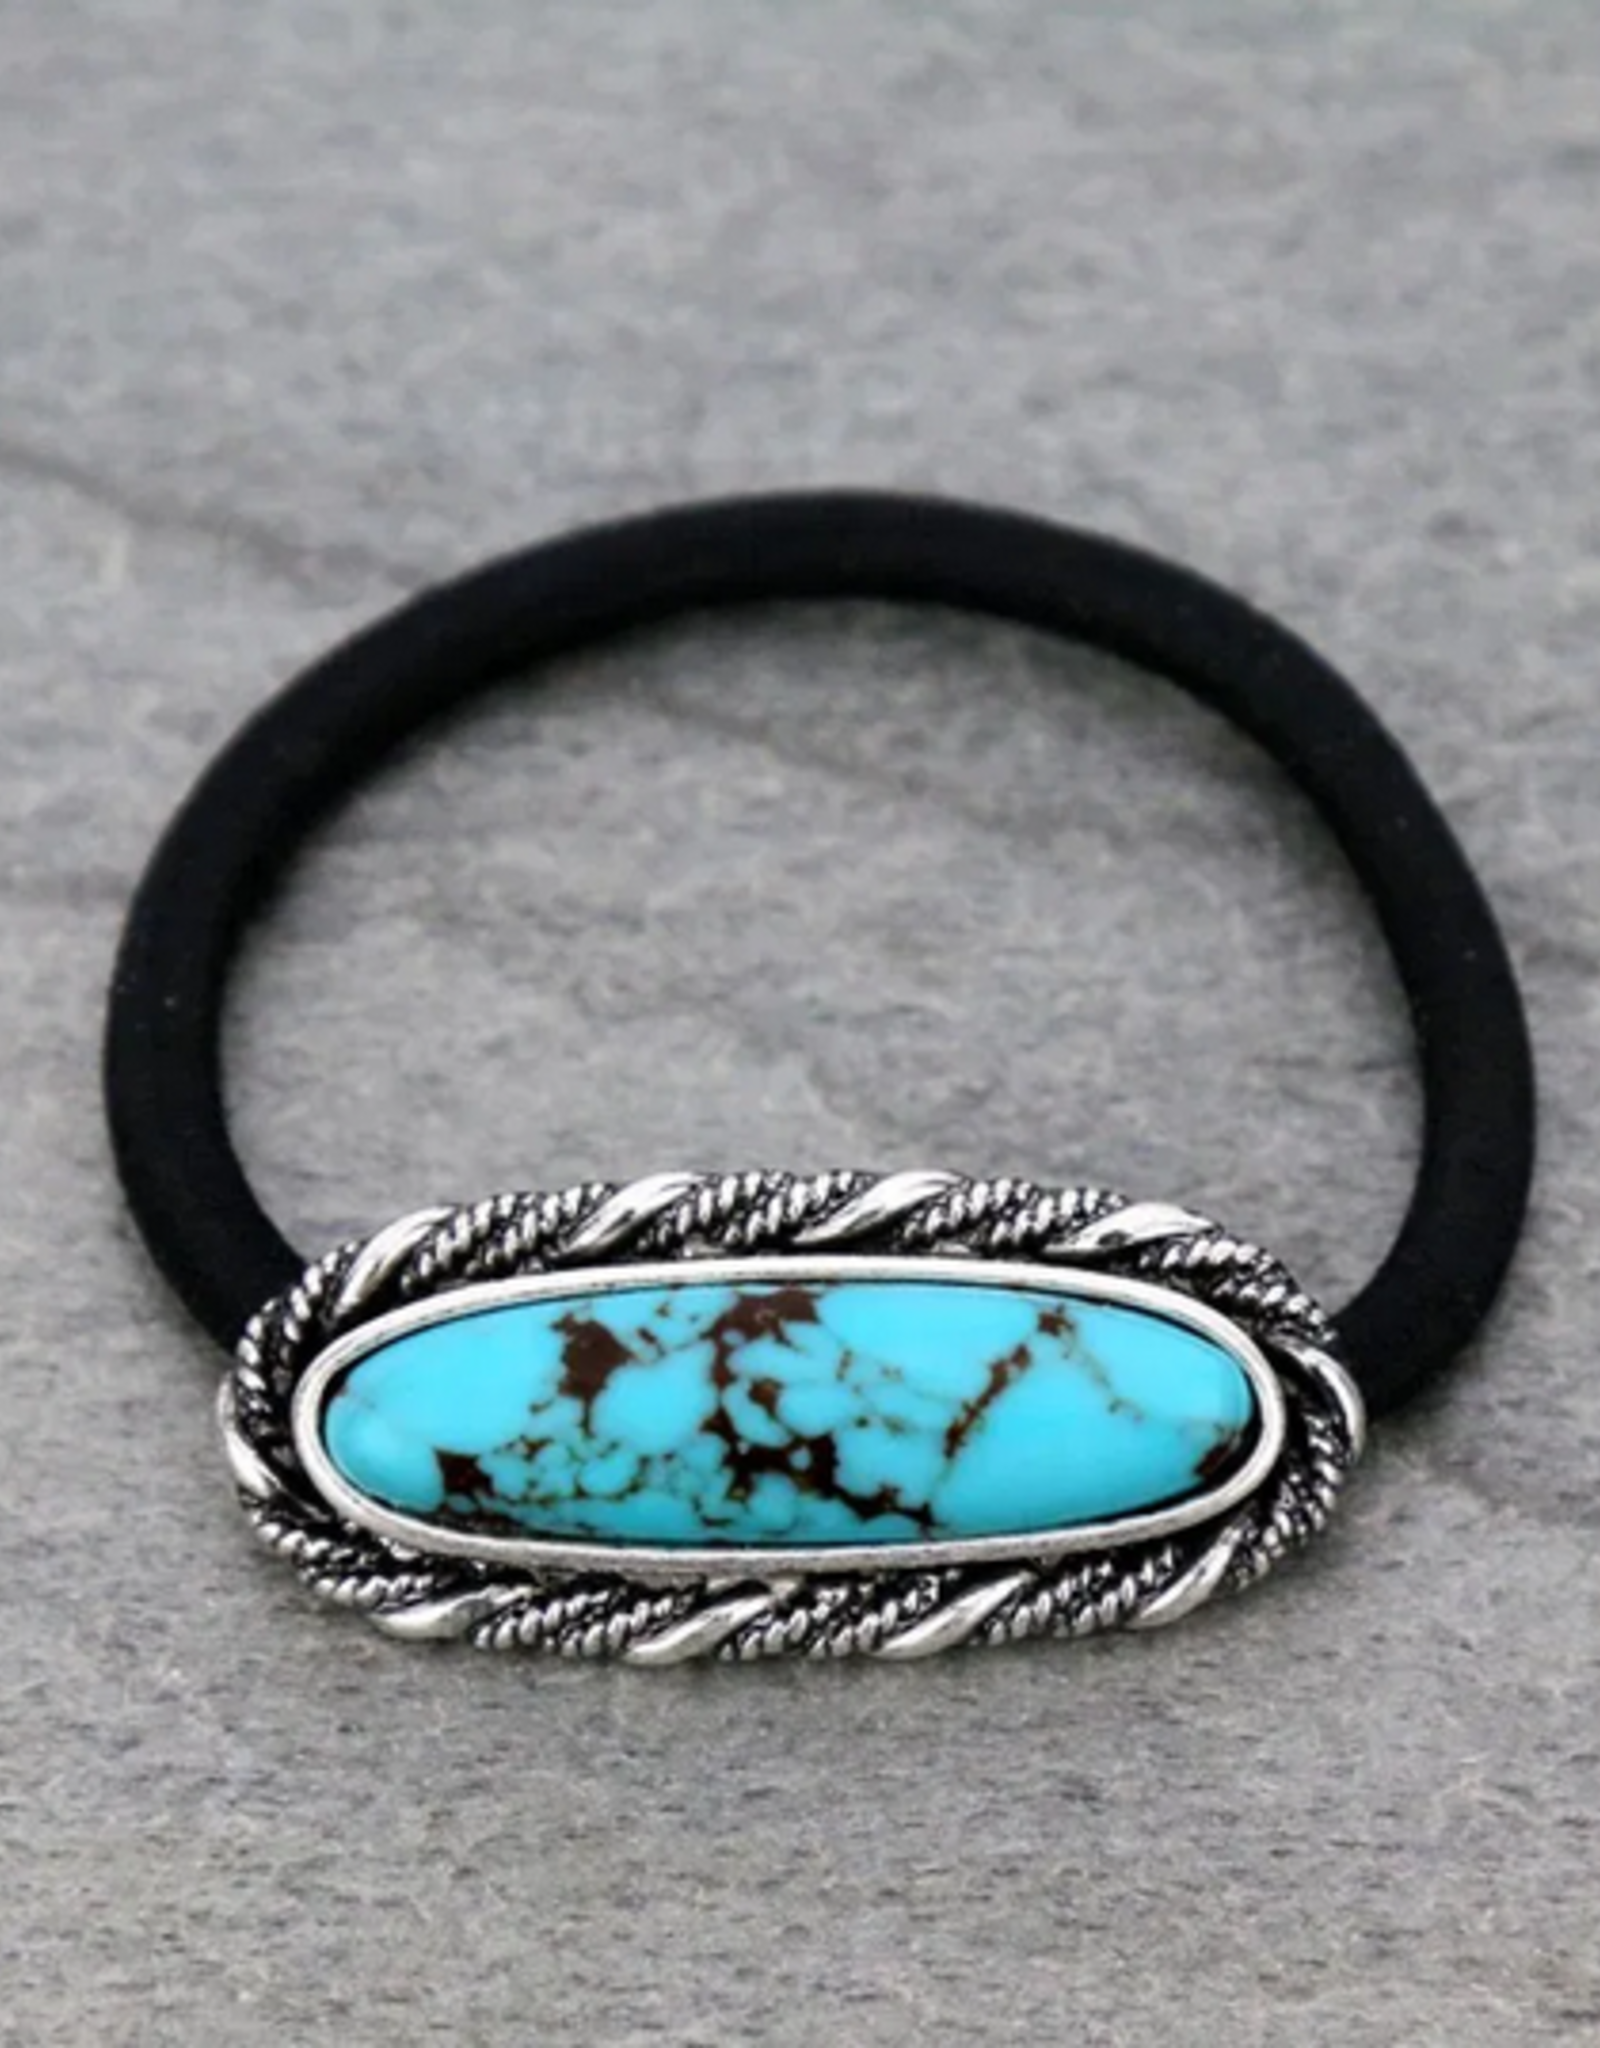 HAIR TIE WESTERN STYLE TURQ STONE